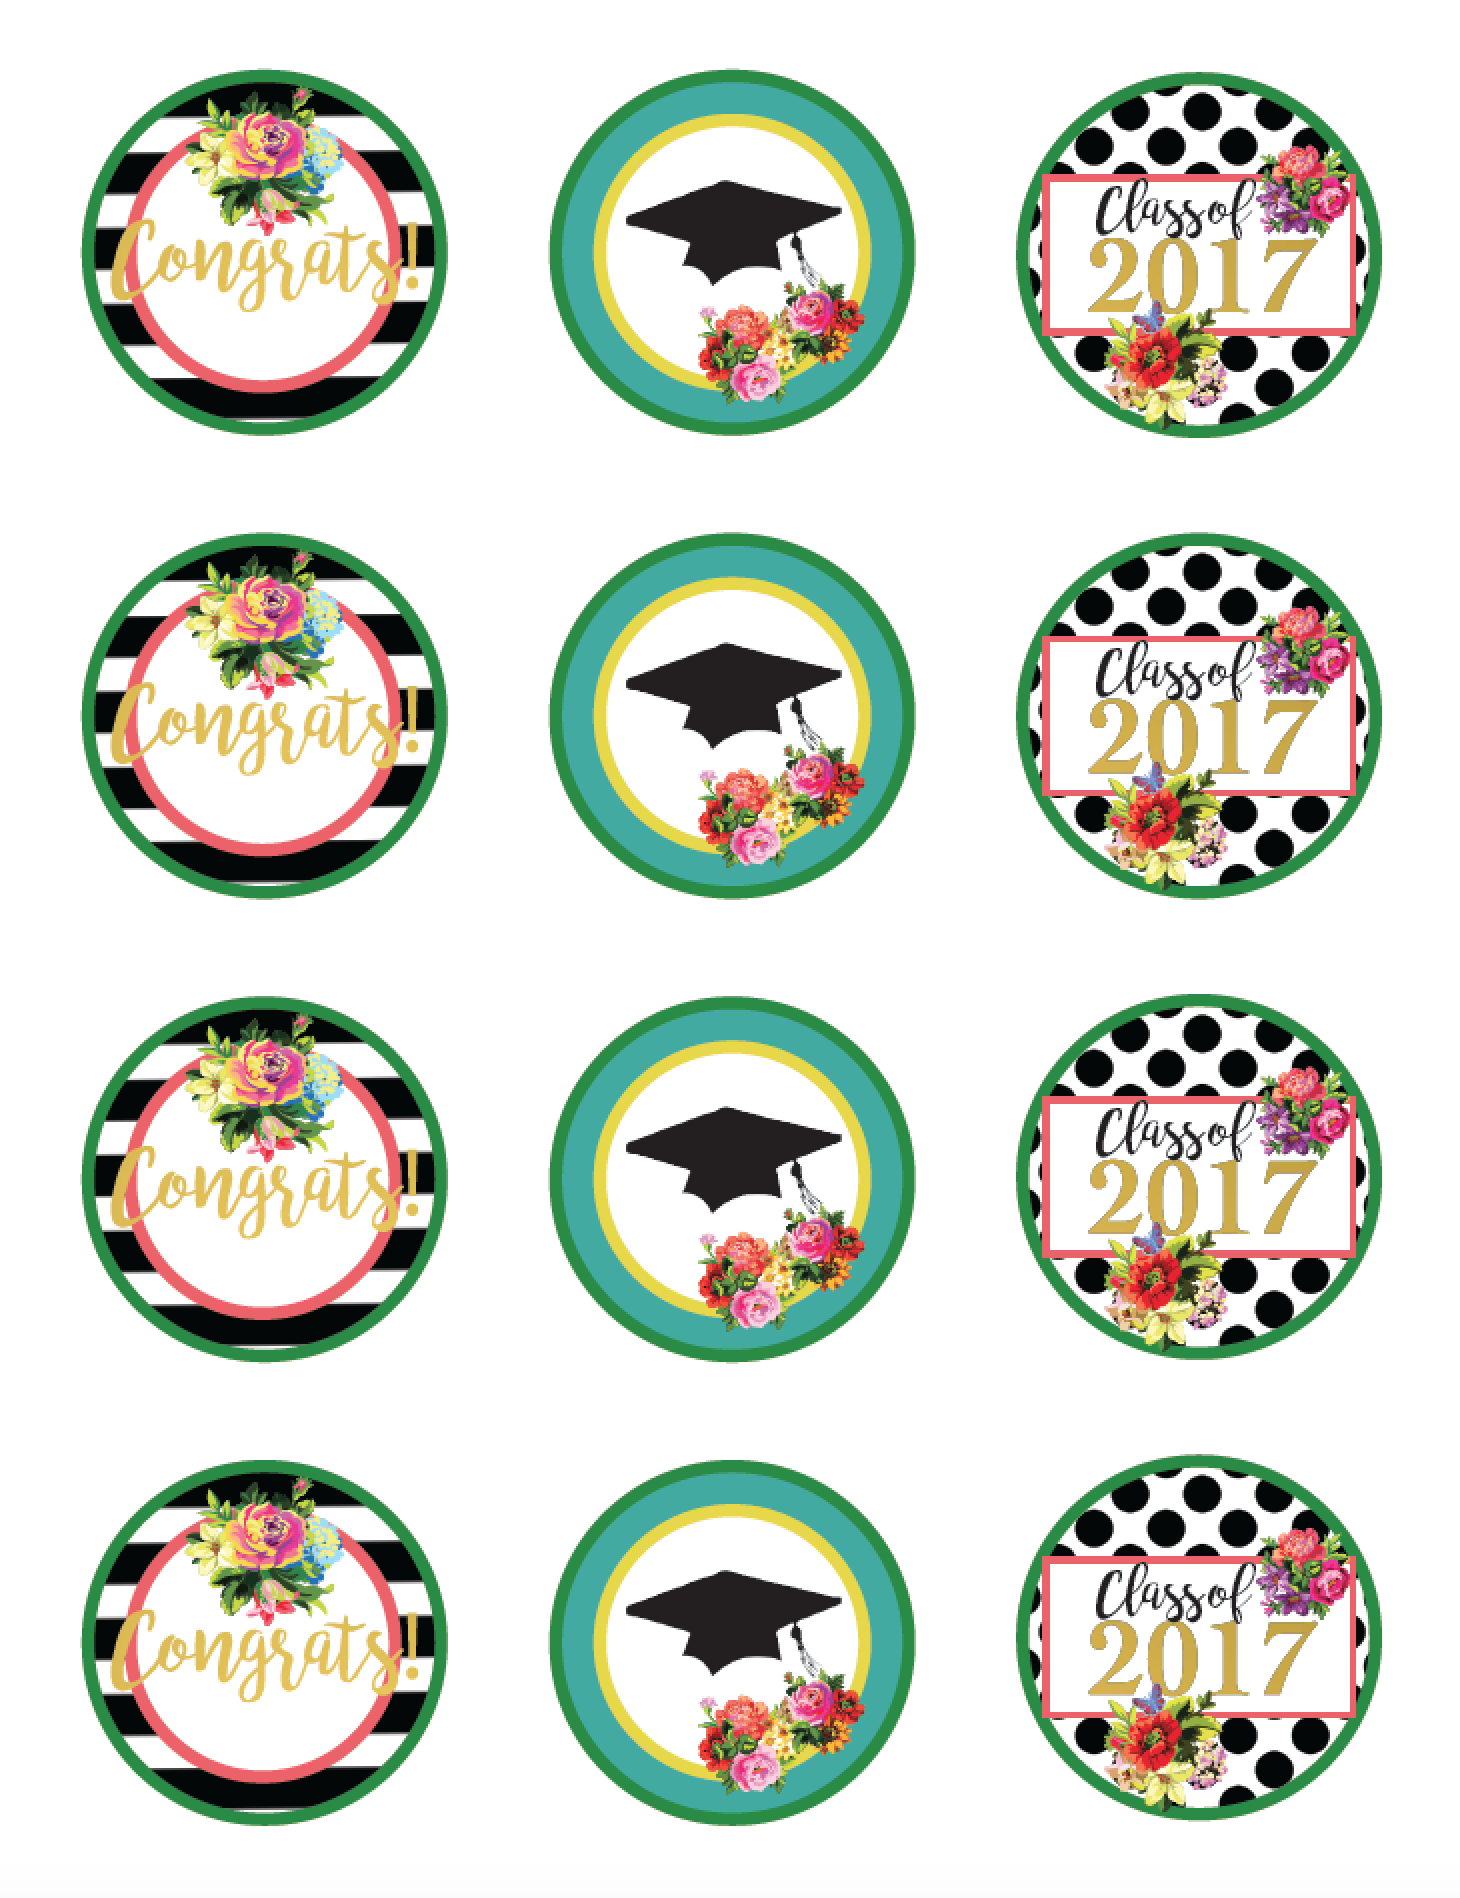 Class Of 2017 Free Floral Graduation Party Printables! | Party Ideas - Free Graduation Printables 2017